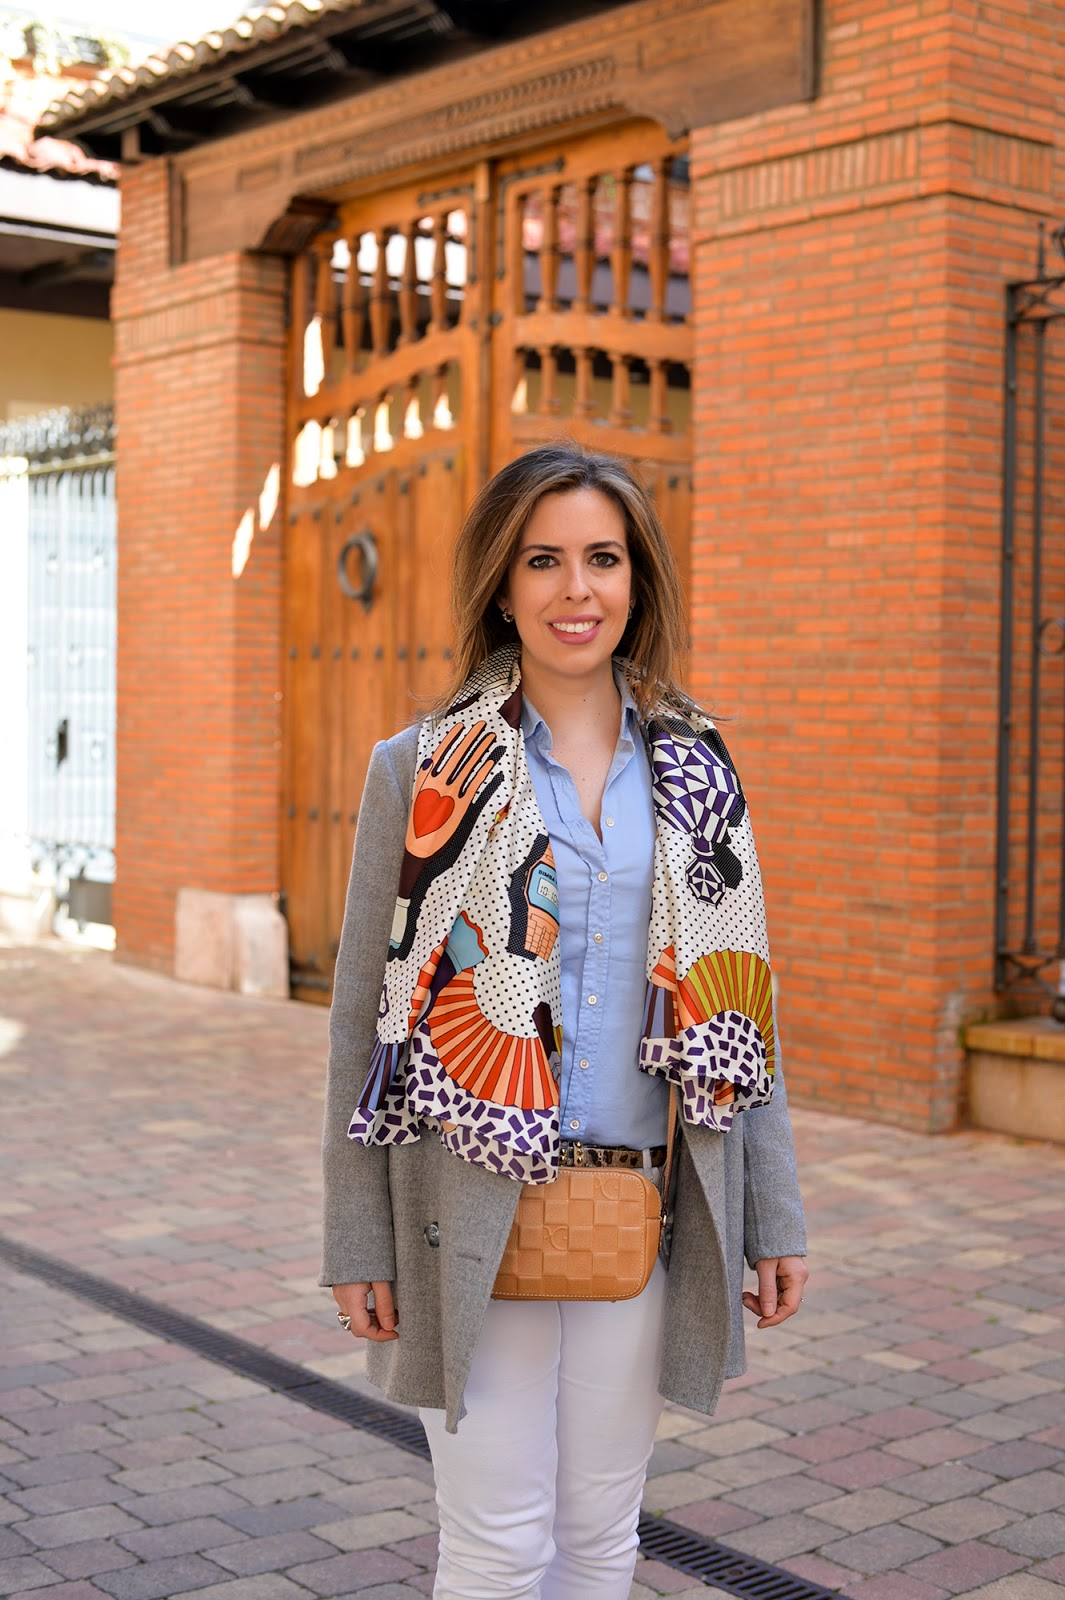 spring travel outfit white jeans gray coat oxford shoes silk scarf crossbody bag europe spain